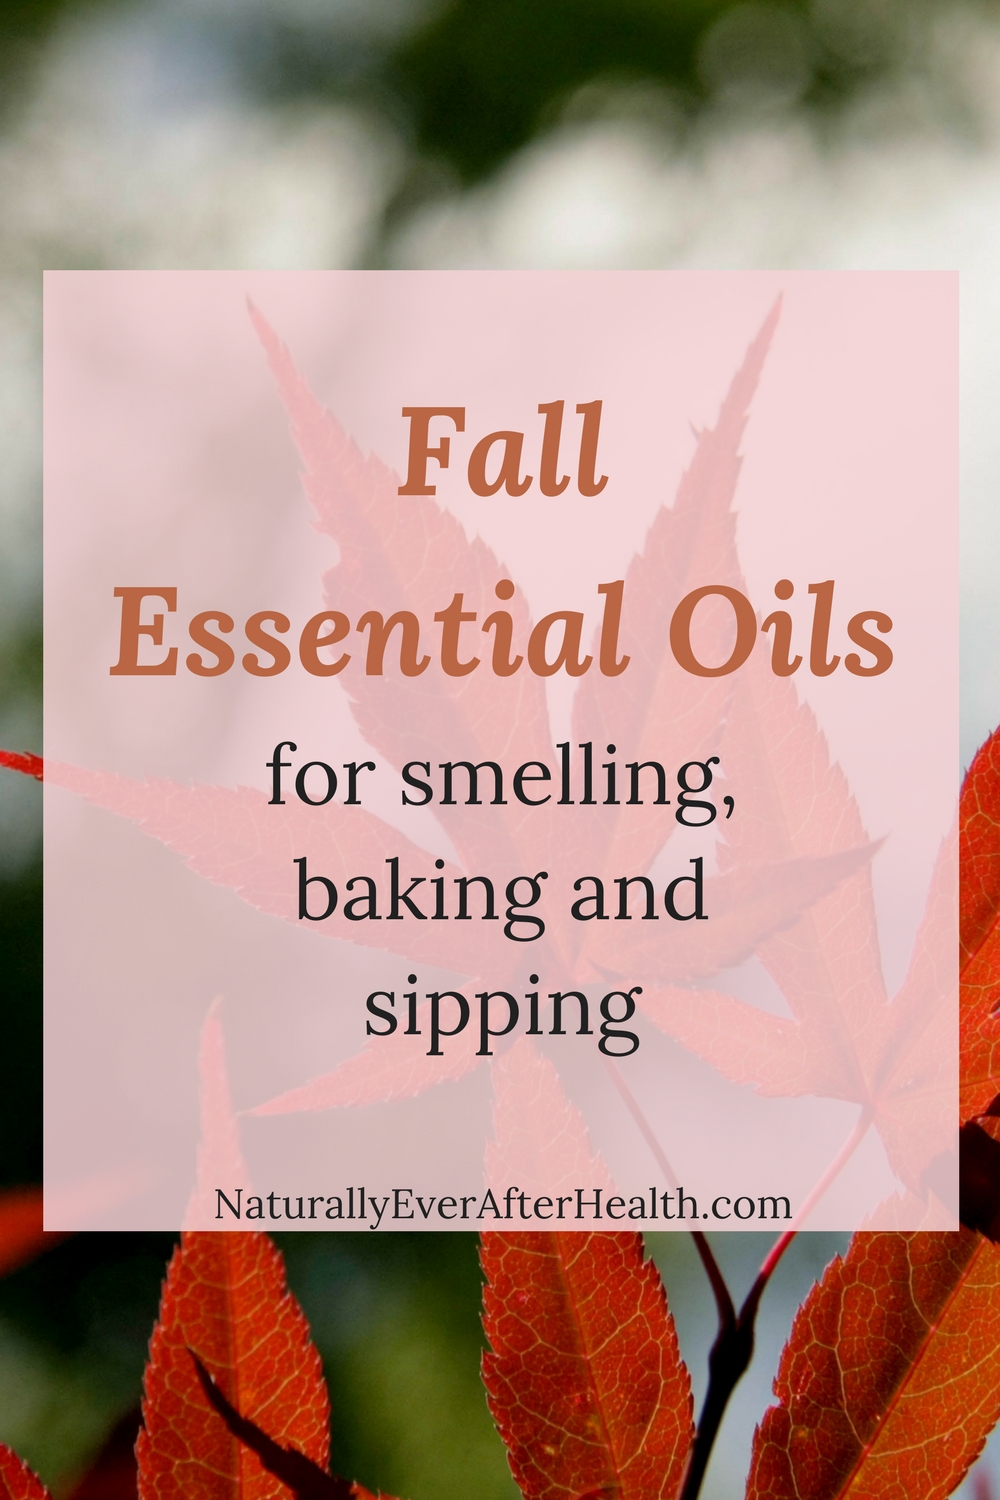 Do you want your house to smell like autumn without all of the chemicals of candles? Here's your guide to fall essential oils! Find the best ones for smelling, baking and sipping.